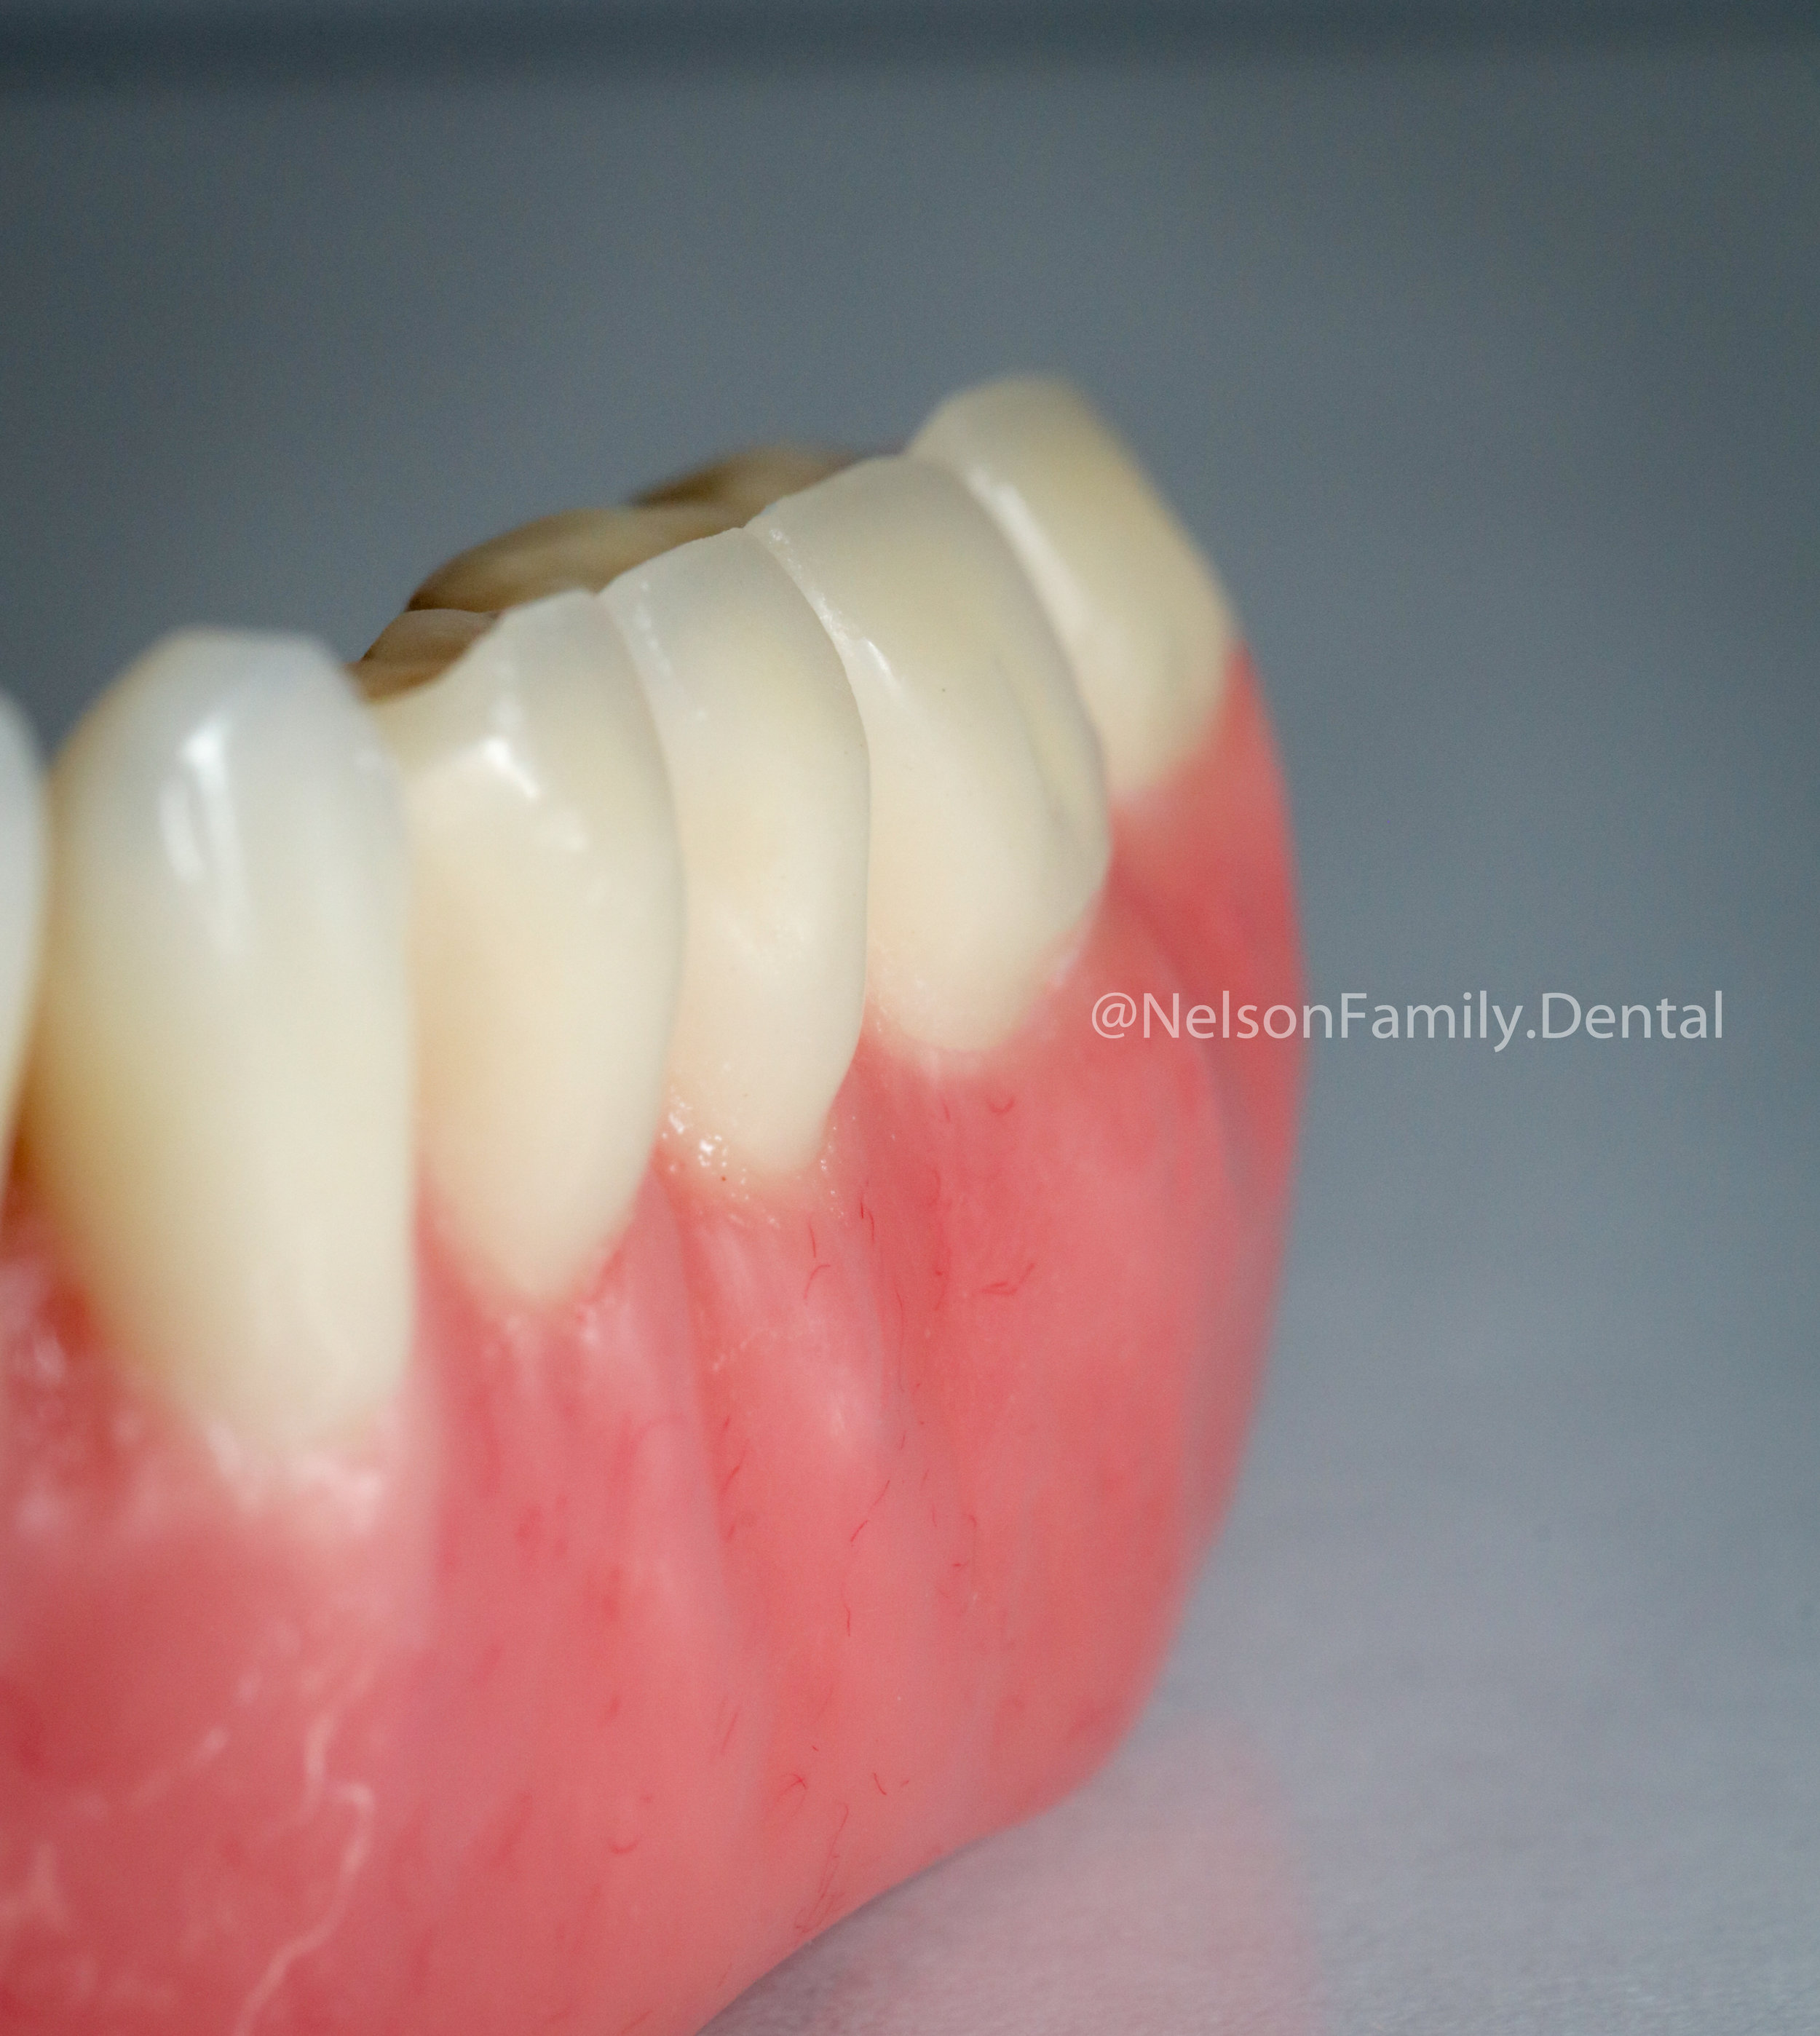 Porcelain-Denture-Implants-5782.jpg